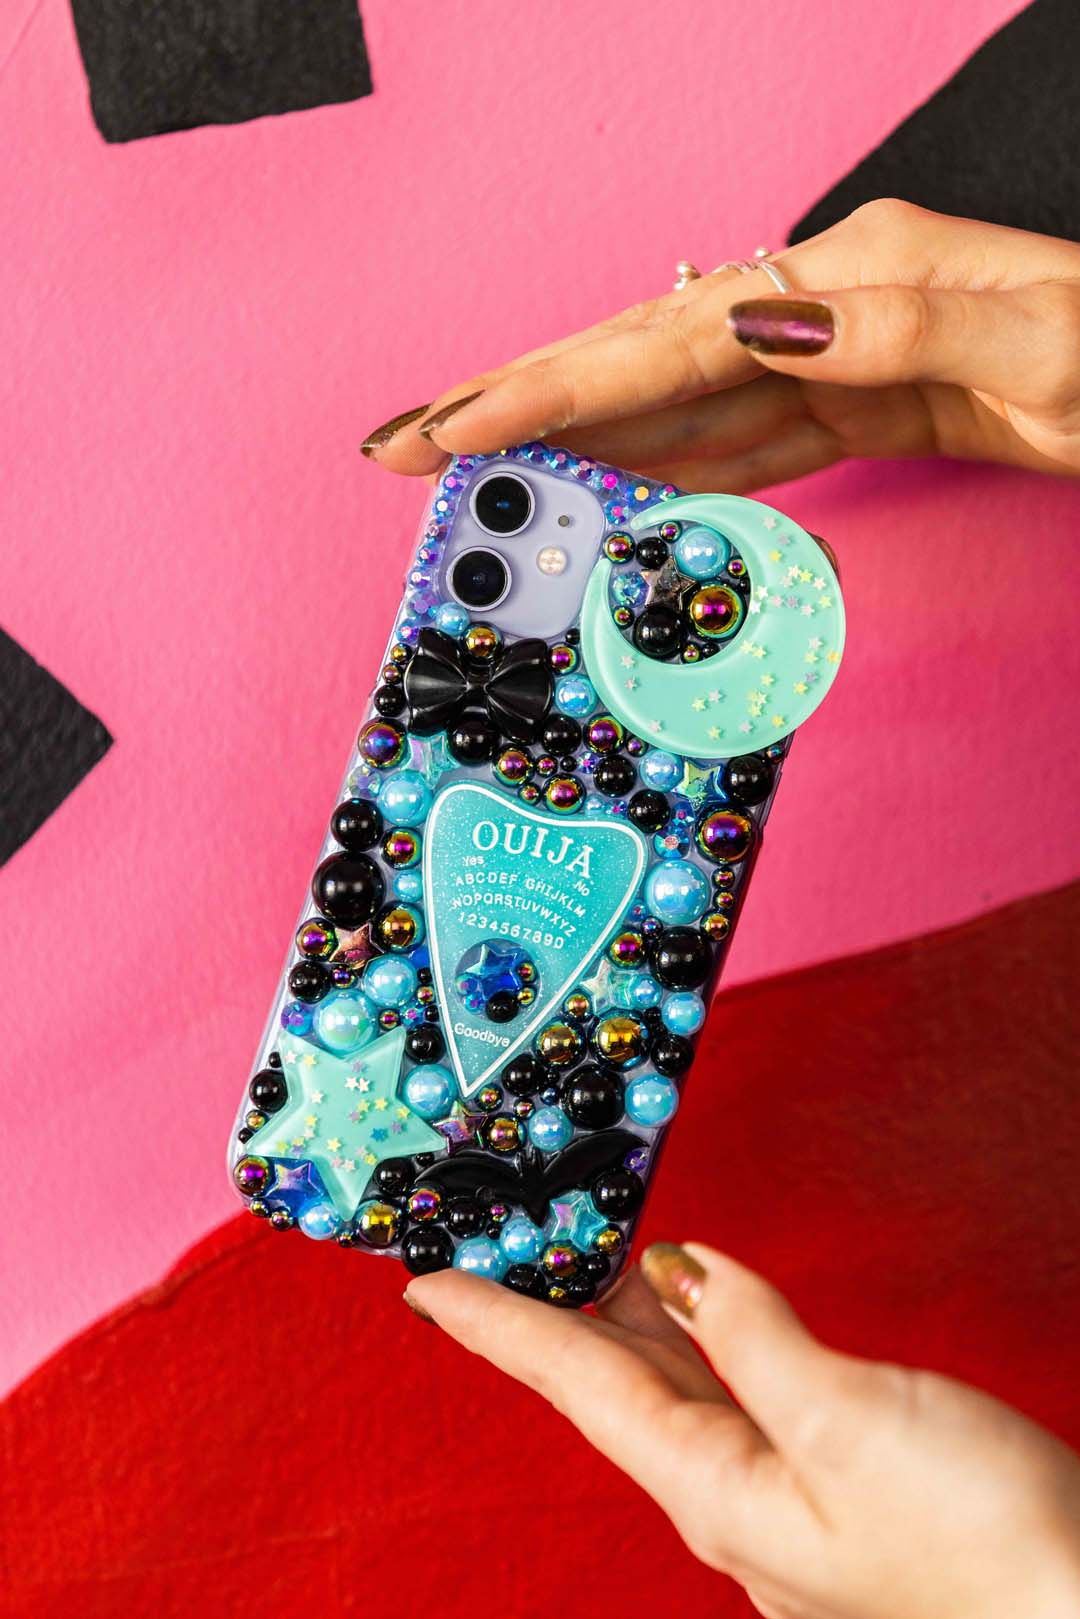 Blue Ouija Planchette Phone Case